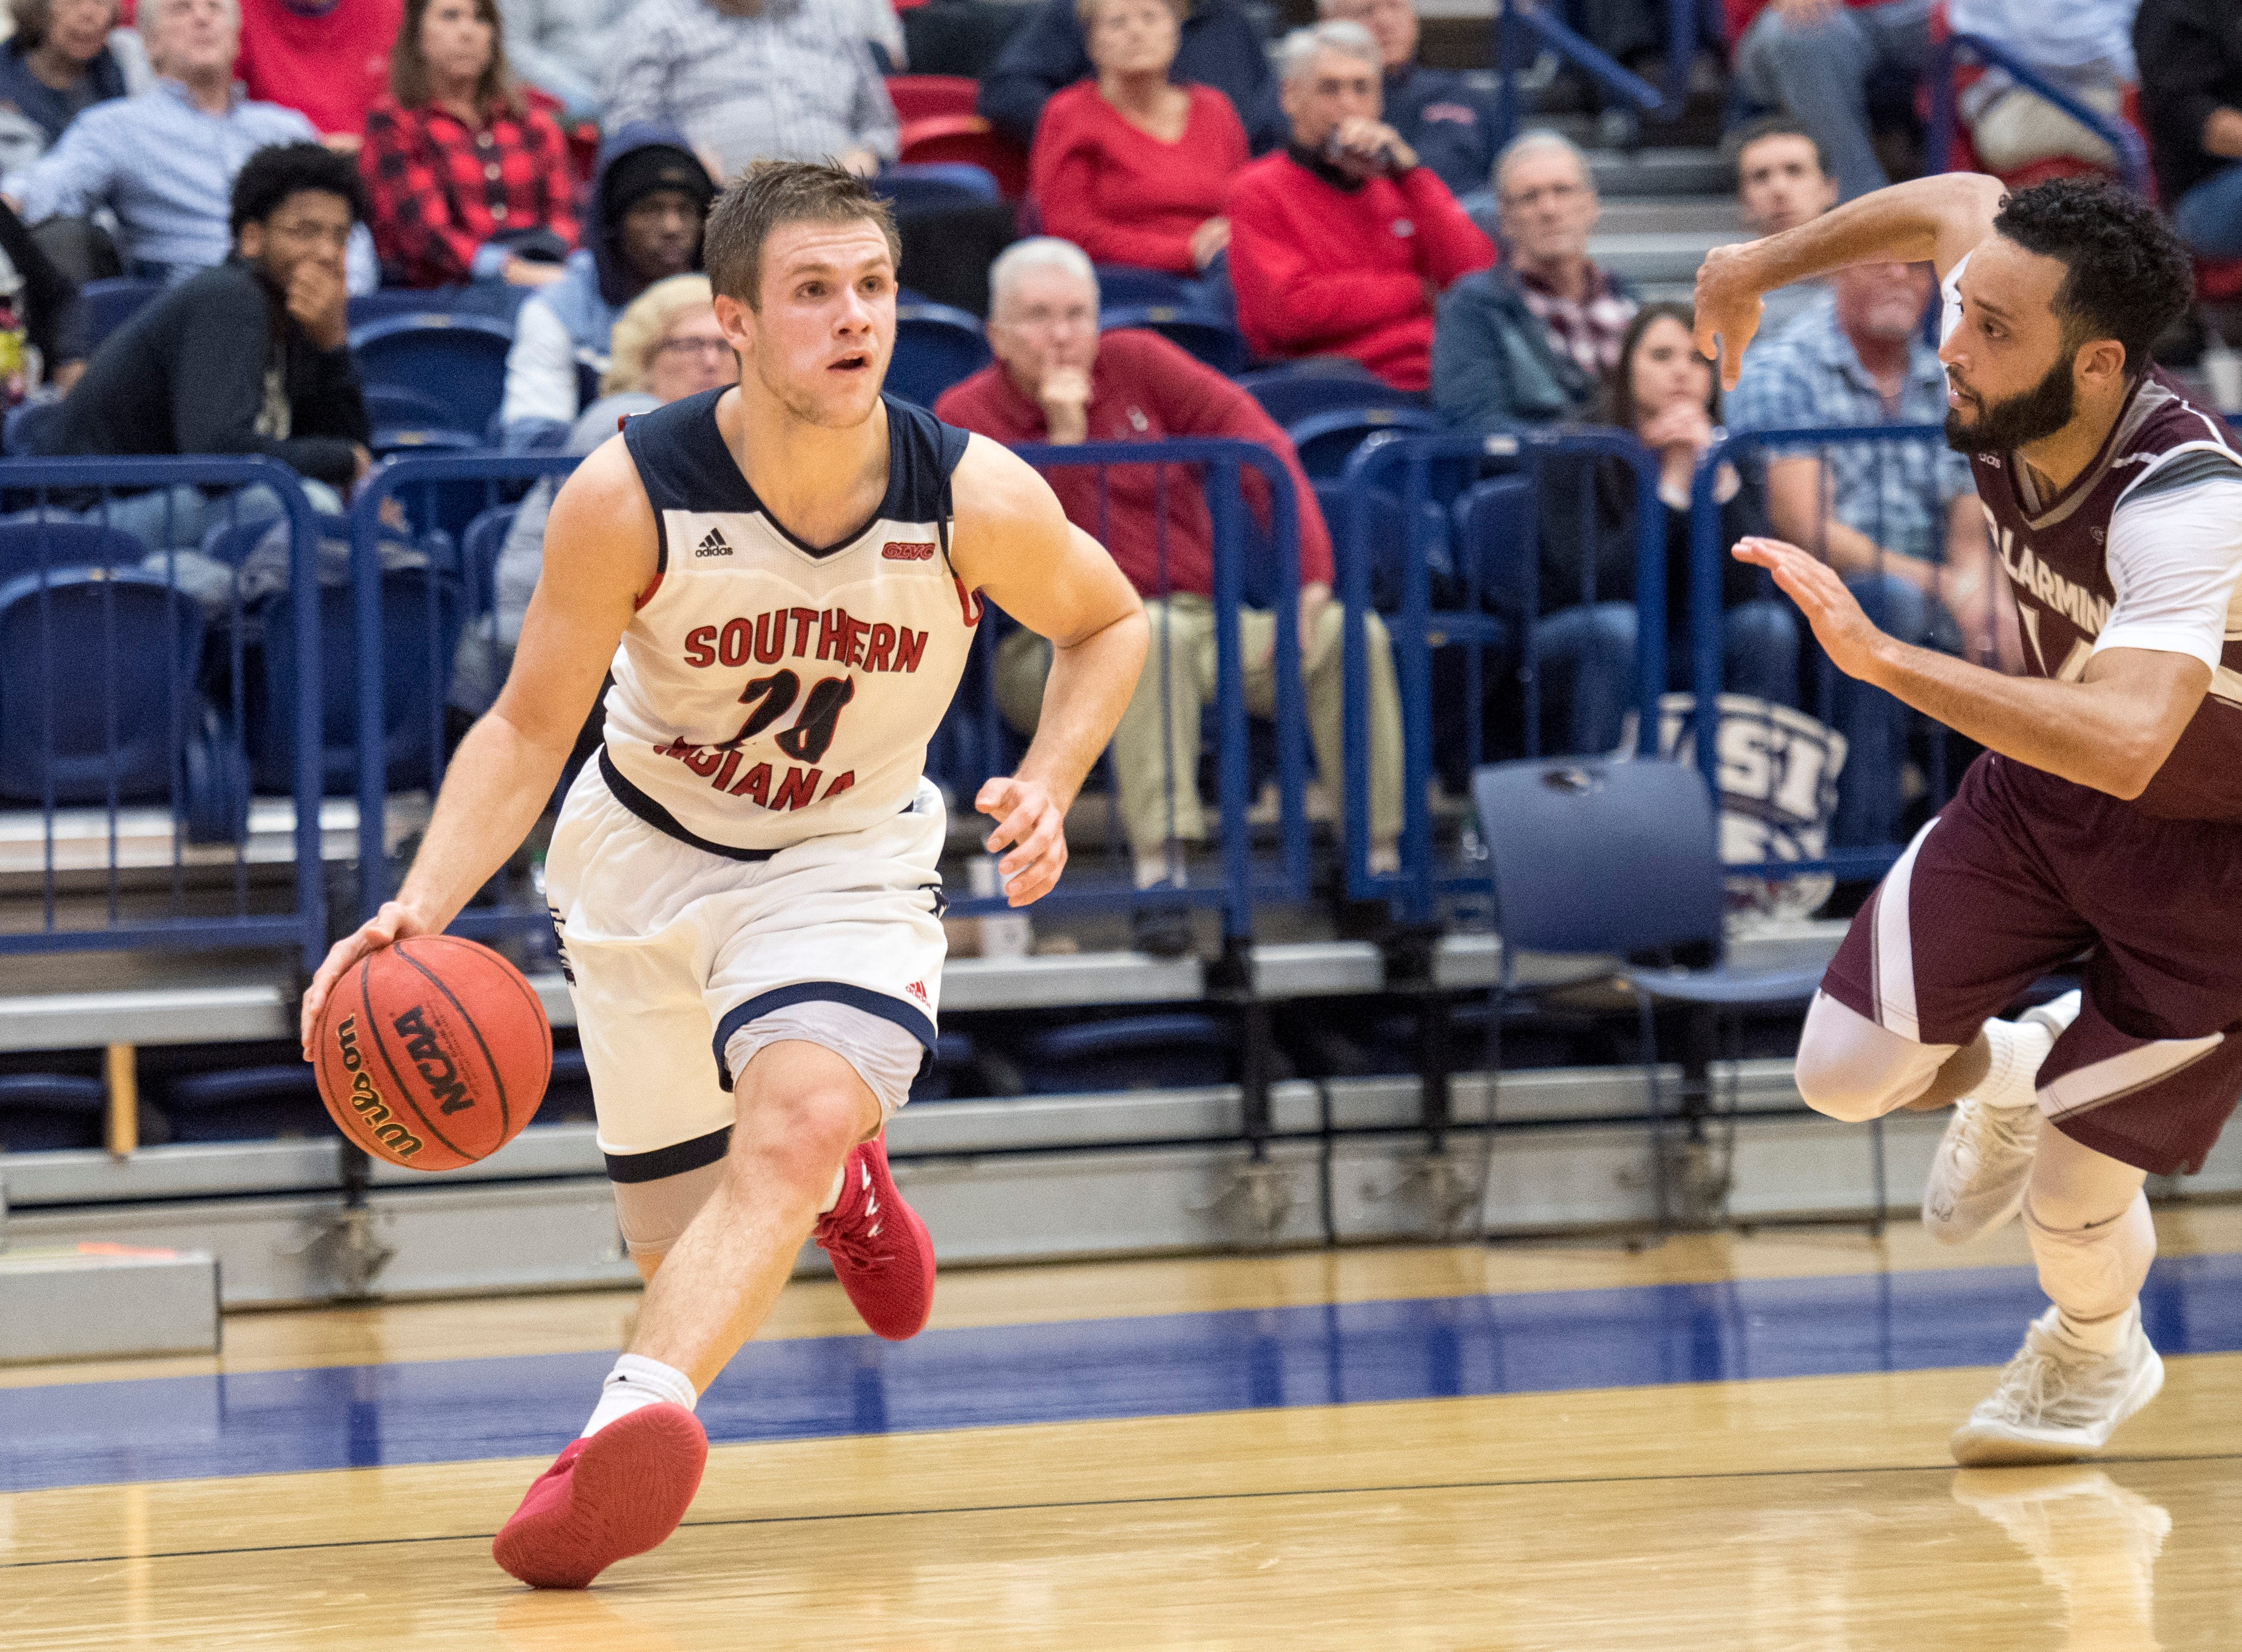 USI's Alex Stein (20) dribbles the ball pass Bellarmine defense during the USI vs Bellarmine game at the PAC Saturday, Dec. 1, 2018.